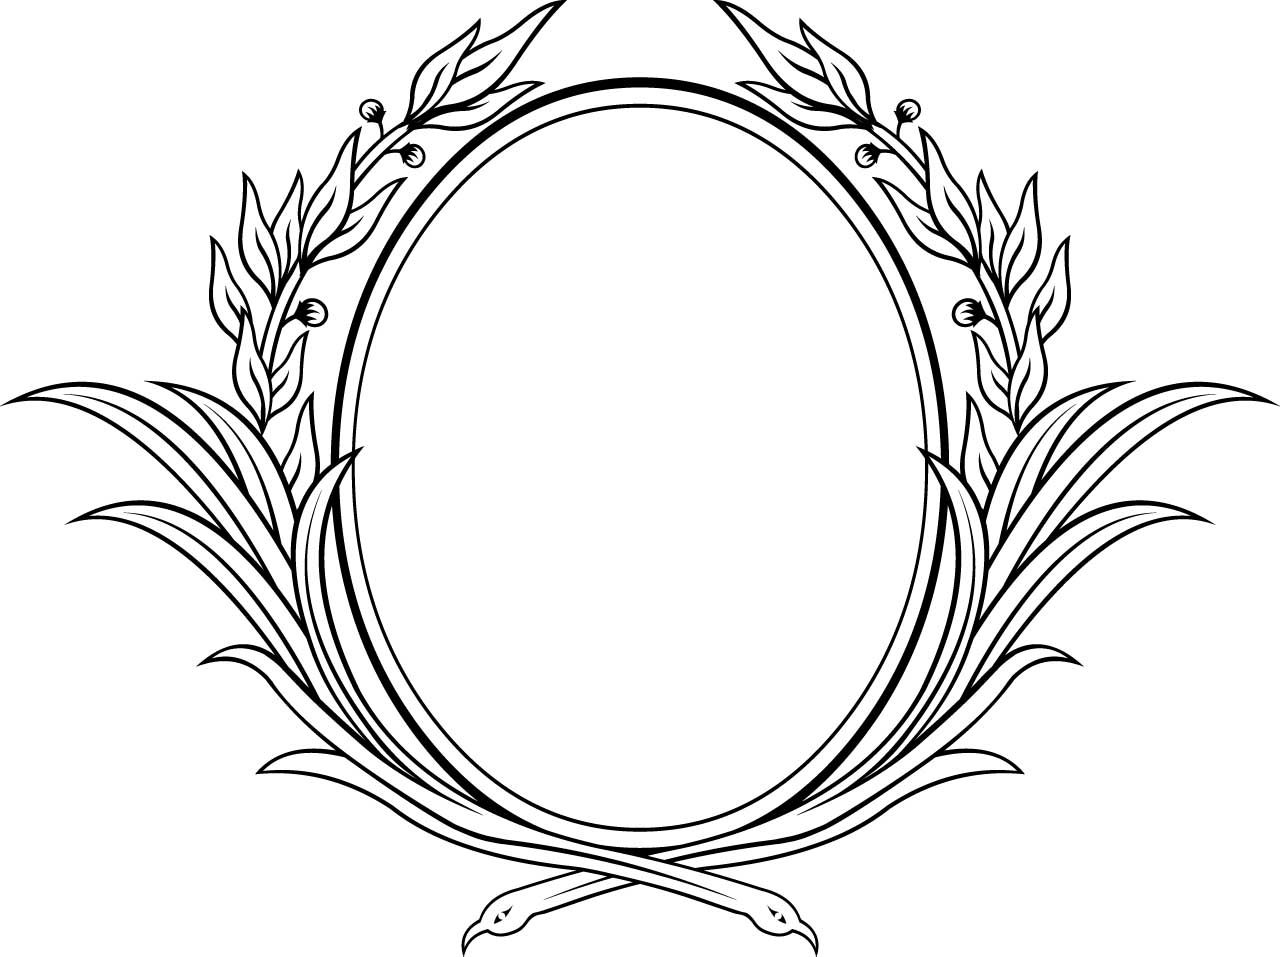 Decorative oval floral vector frame | Free download